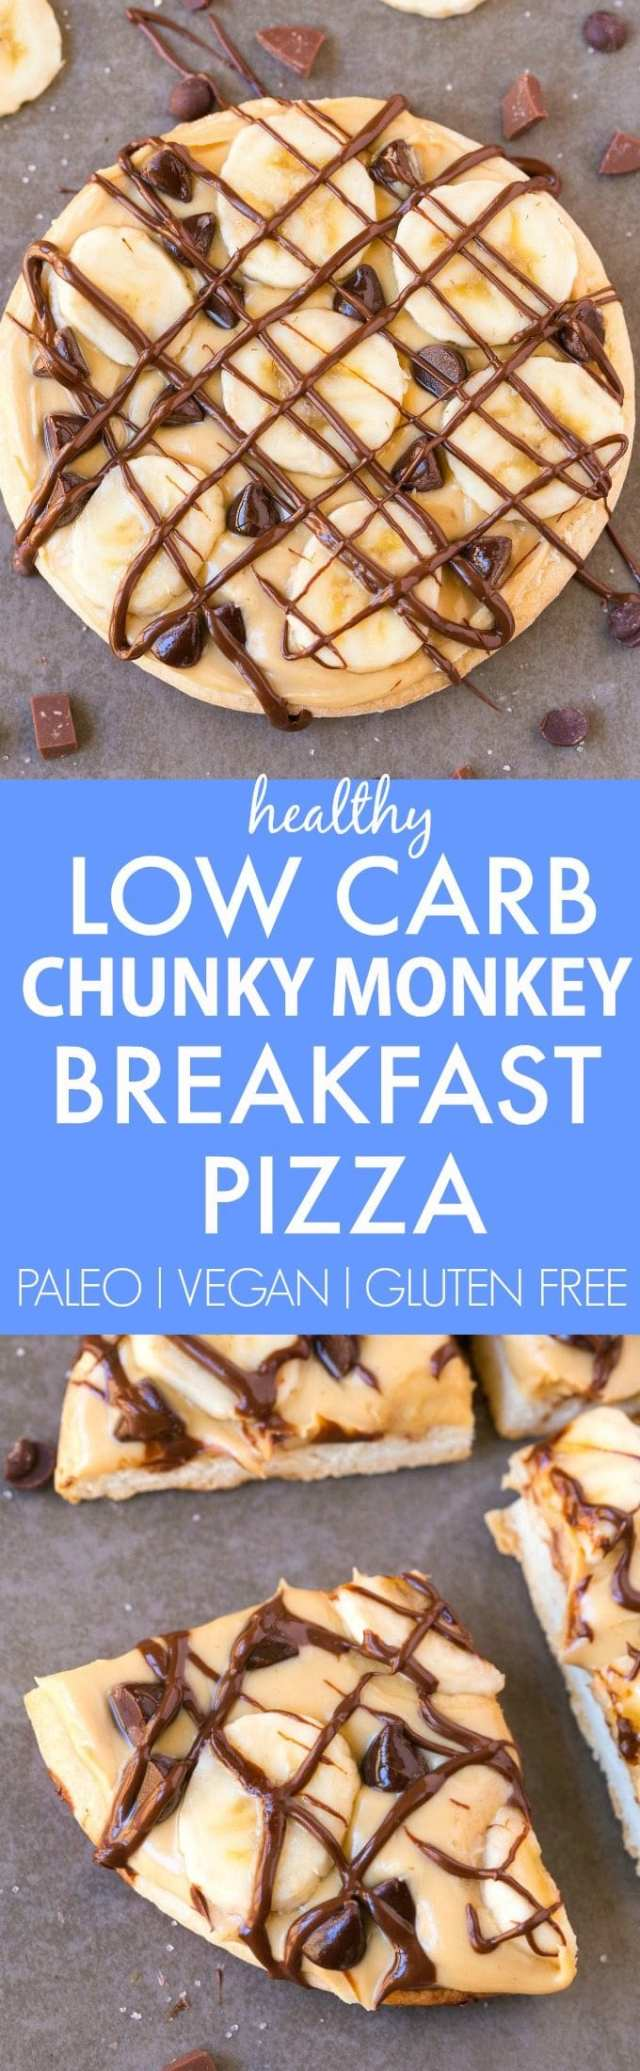 Healthy LOW CARB Chunky Monkey Breakfast Pizza (V, GF, Paleo)- A guilt-free breakfast which tastes like dessert- Smooth nut butter, fresh banana slices and a drizzle of clean eating chocolate- Quick, easy and filling! {vegan, gluten free, paleo recipe}- thebigmansworld.com